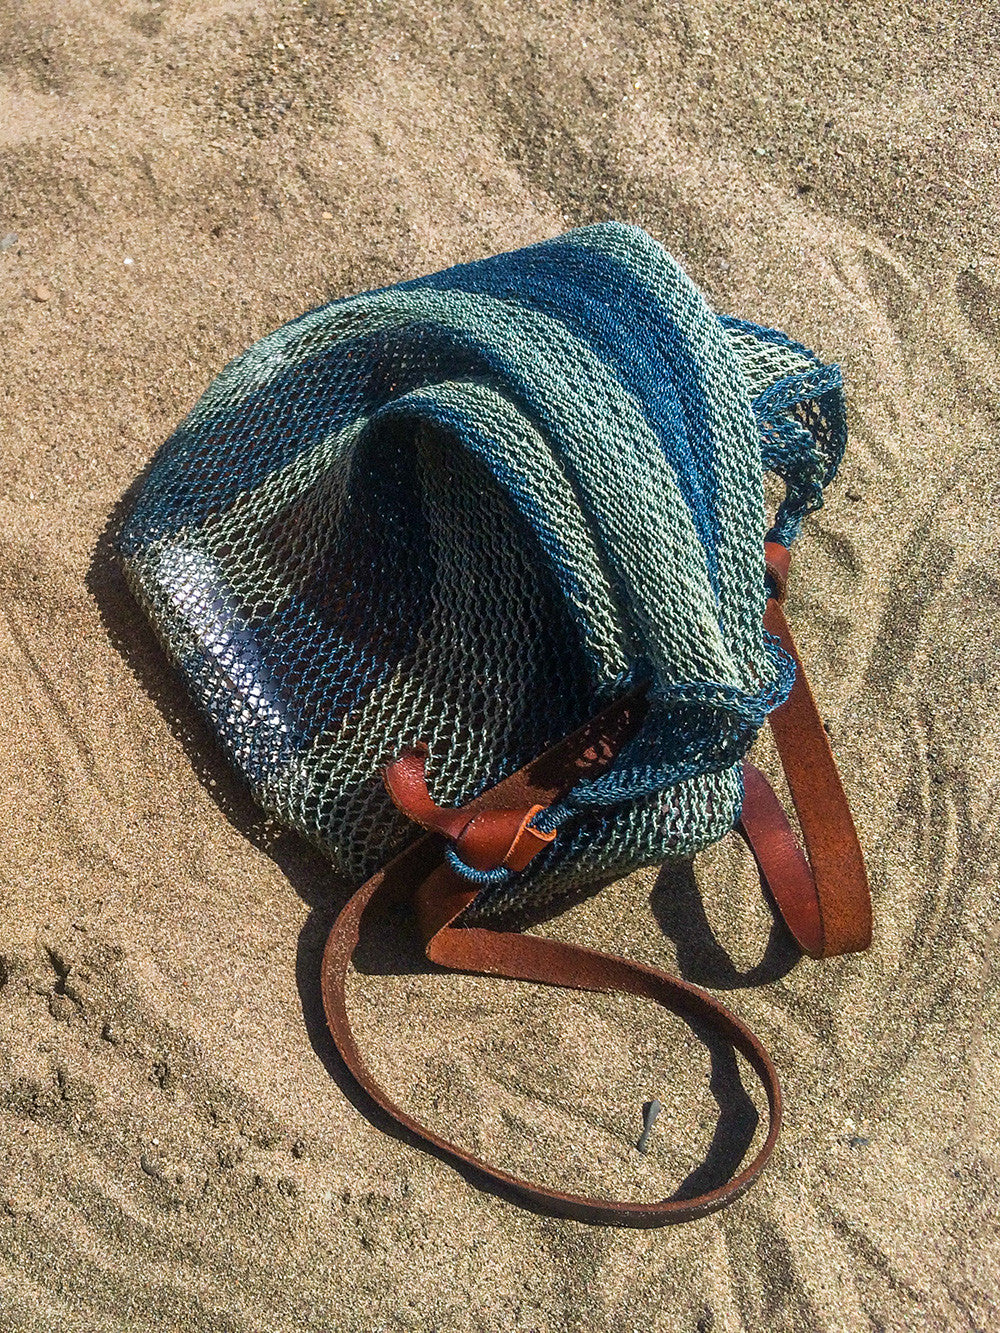 Mexico Netted Bag